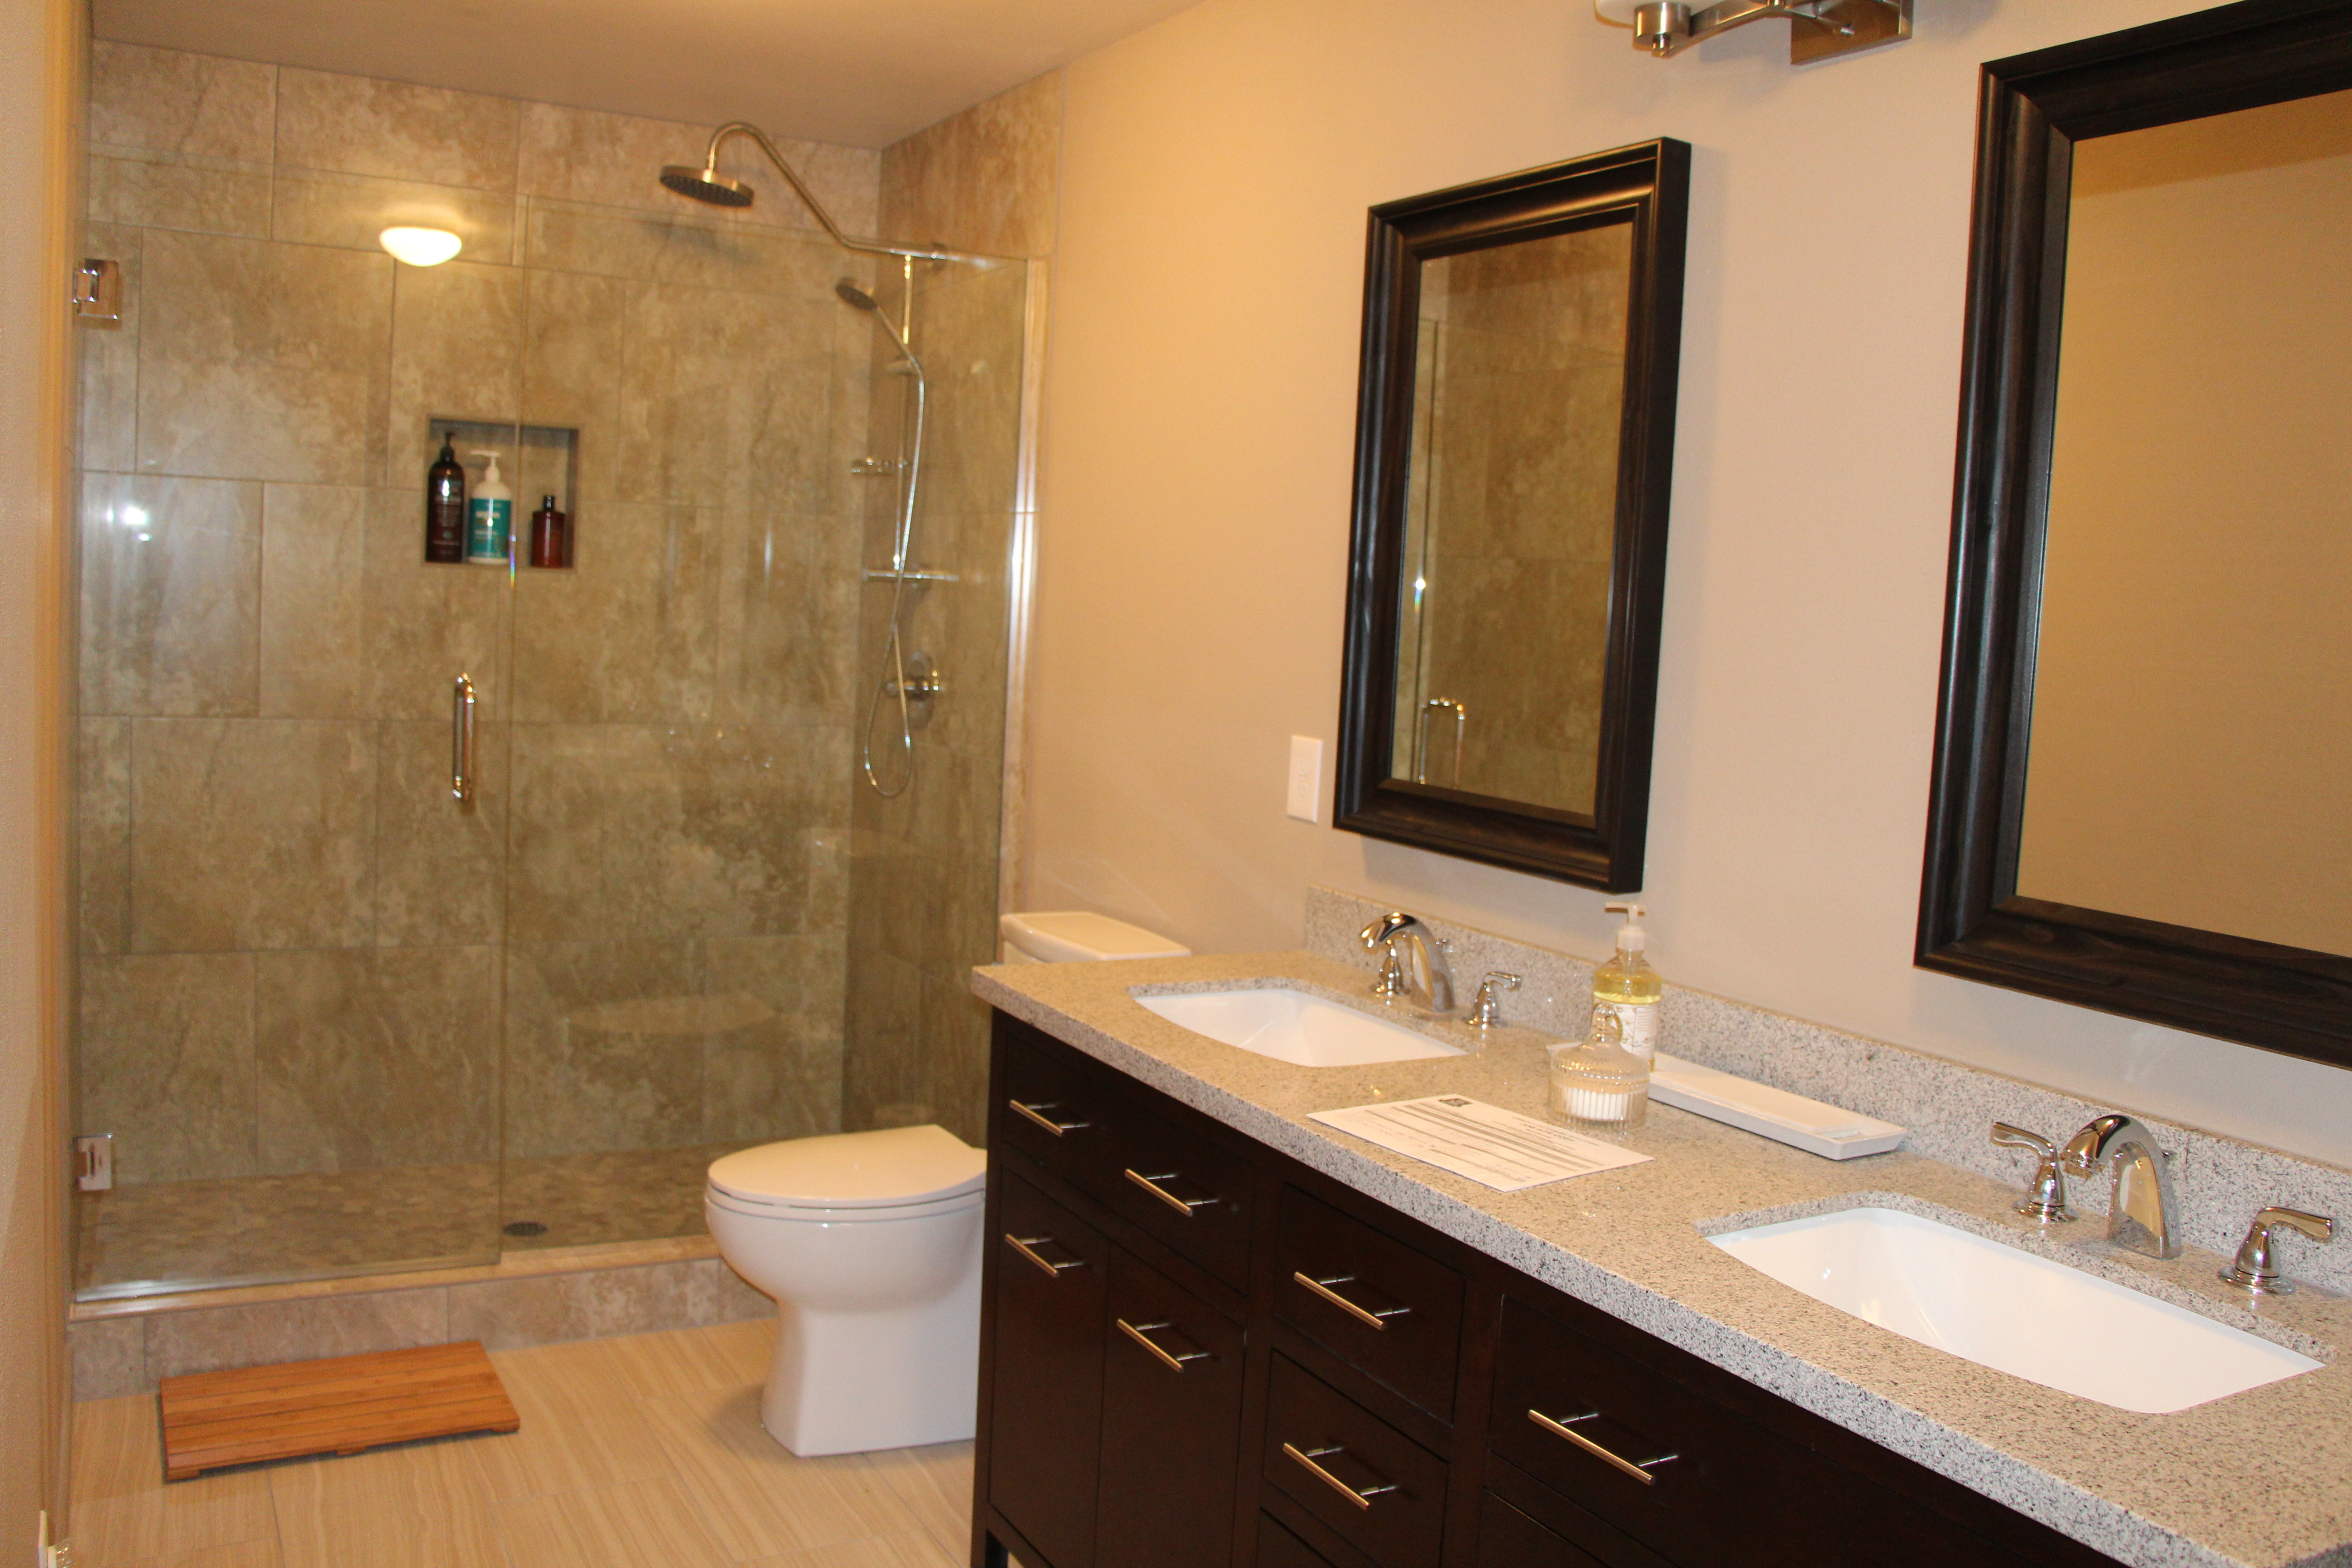 Pavel 39 S Tile Llc General Contractor In Washougal Wa 503 995 5